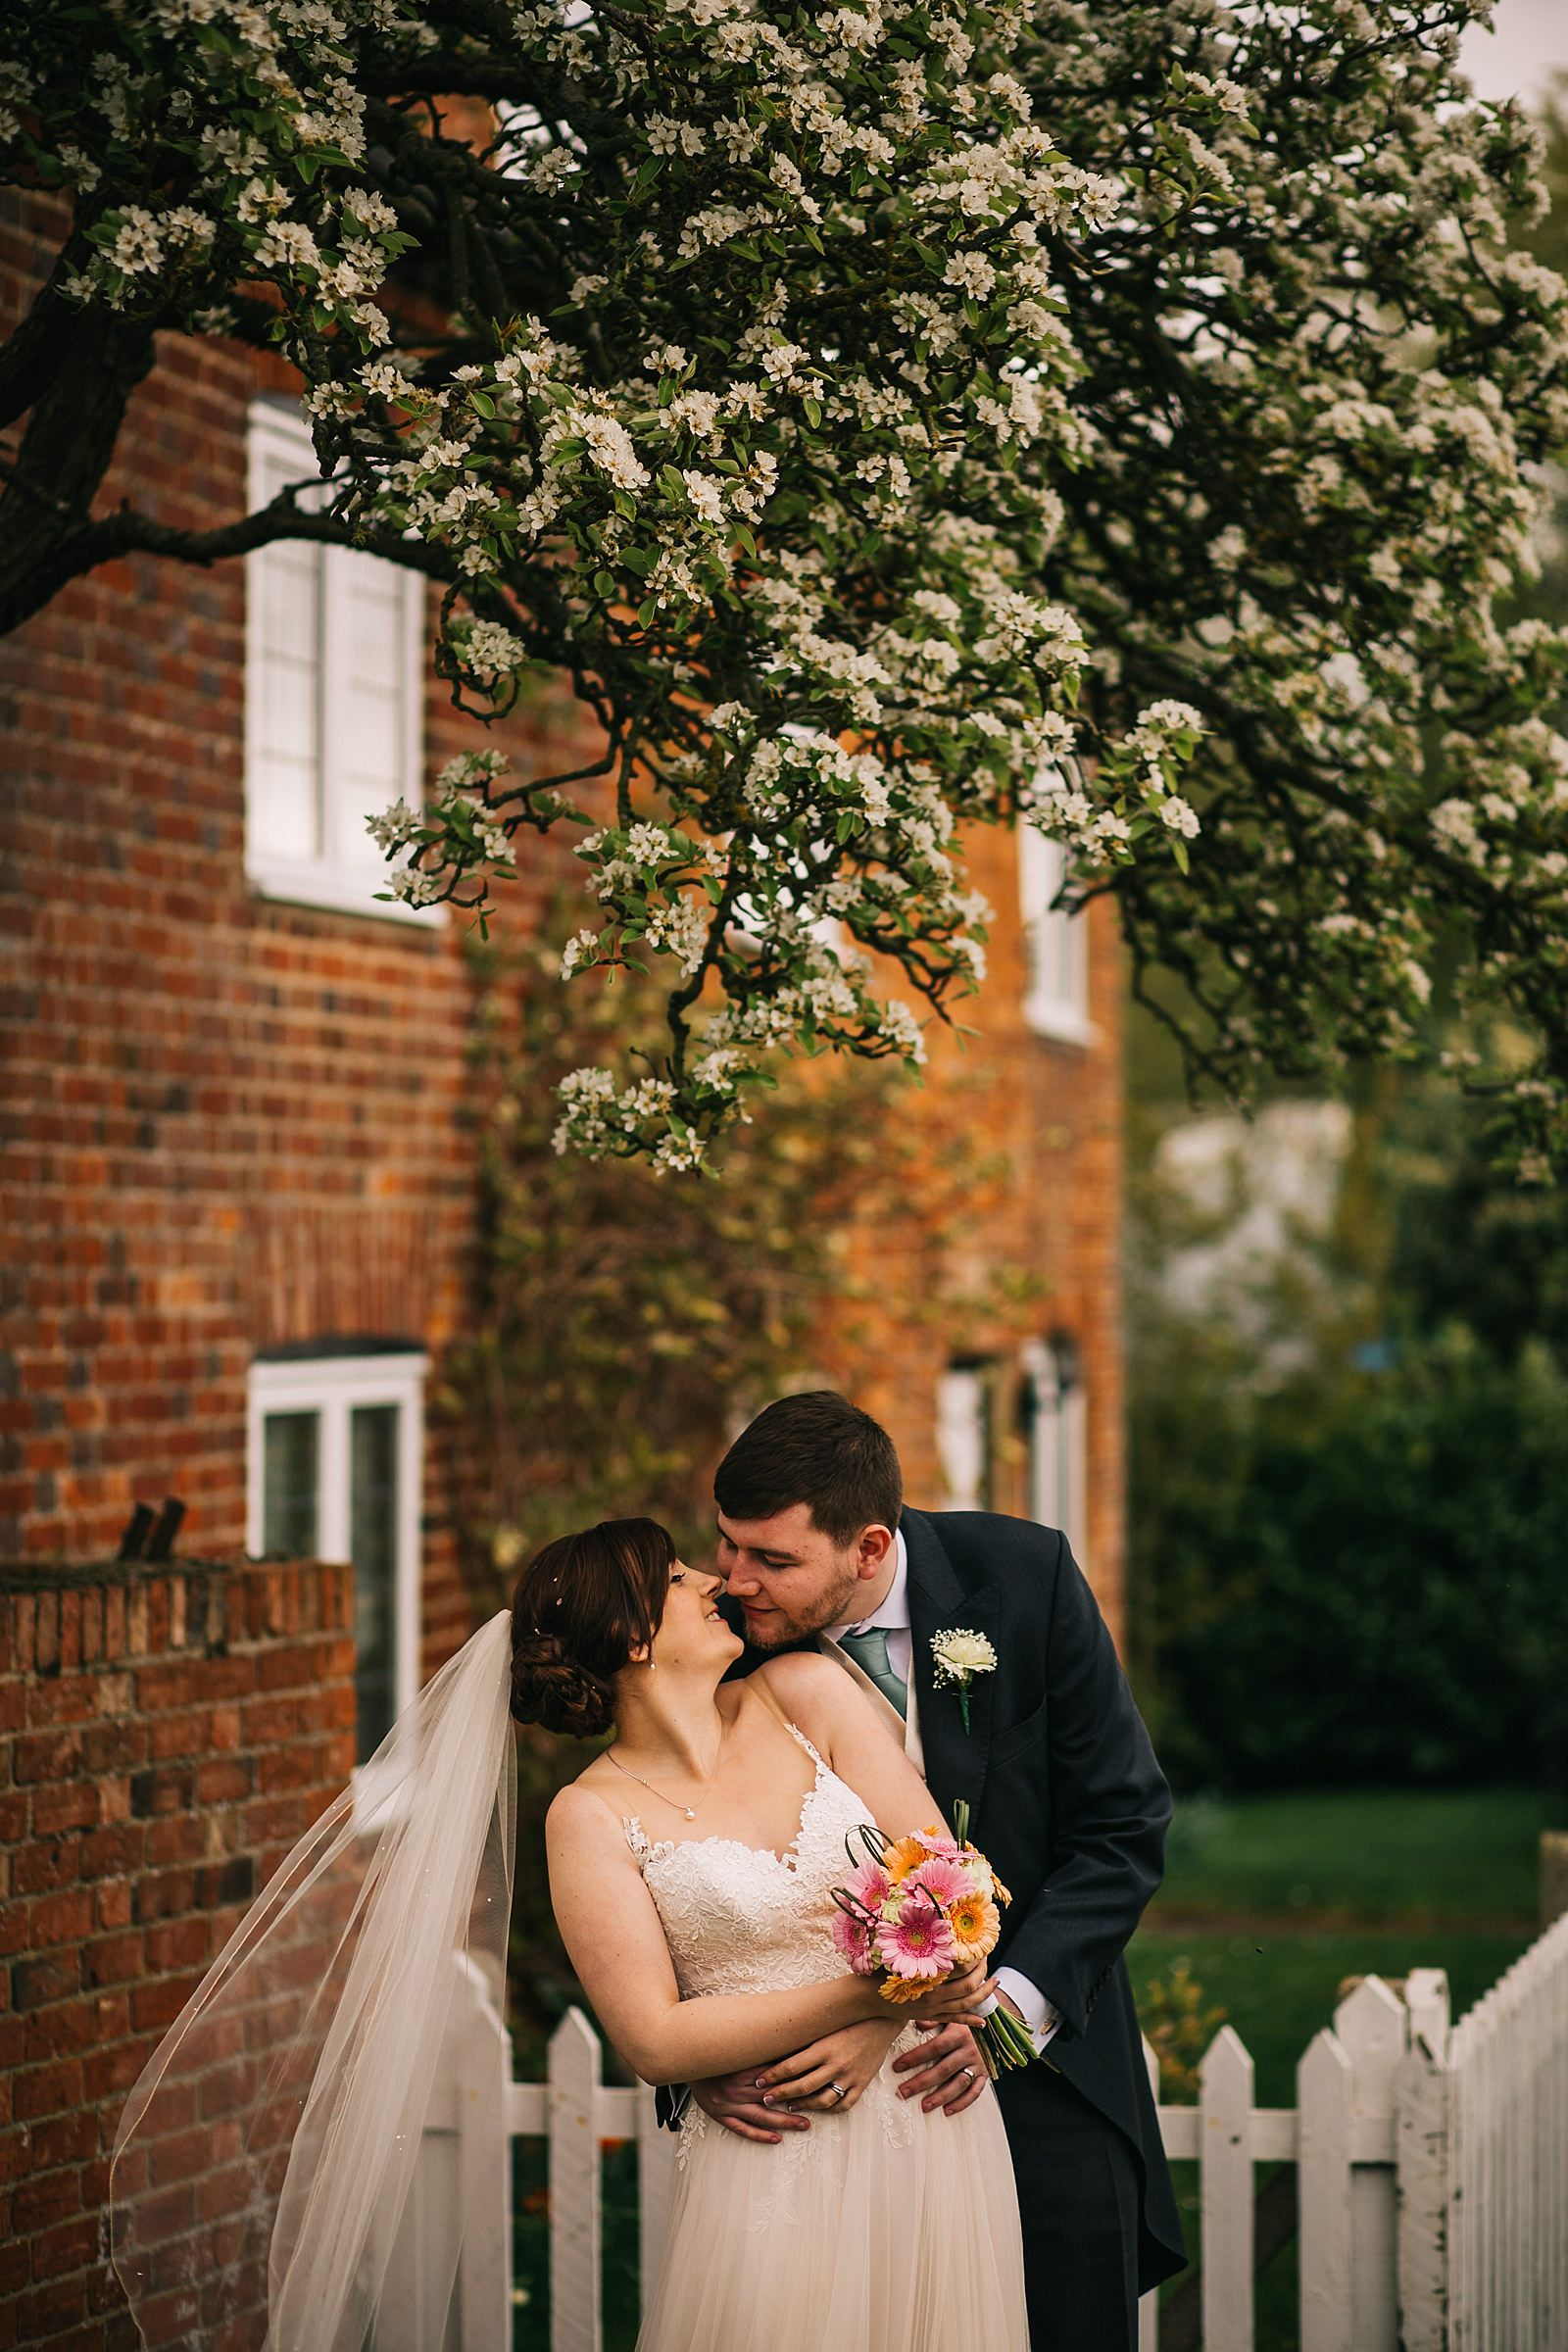 grace-josh-wedding-blisworth-the walnut-tree-inn-359